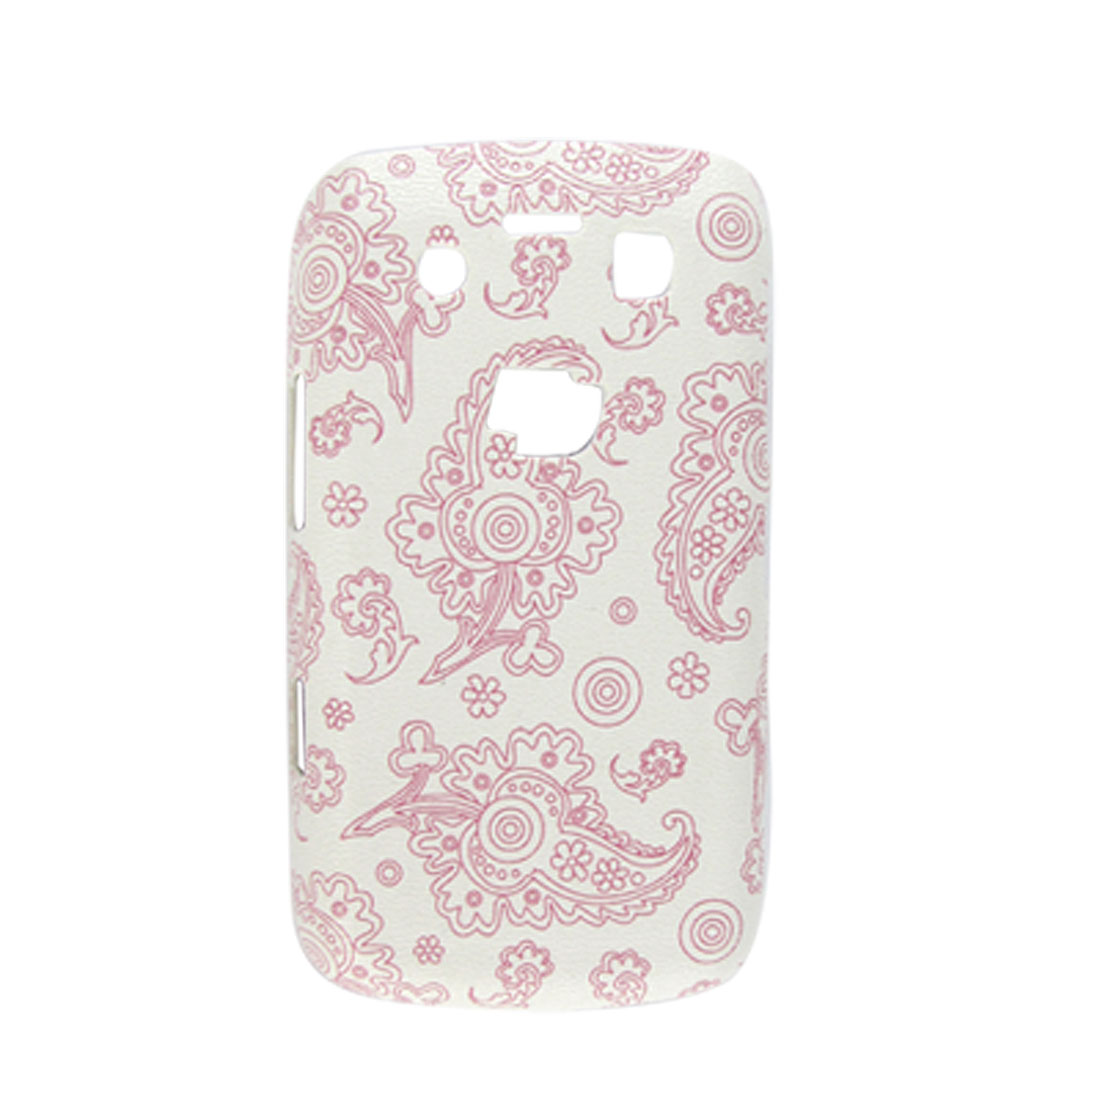 Peacock Feather Hard Plastic Back Shell for Blackberry 9700 Pink